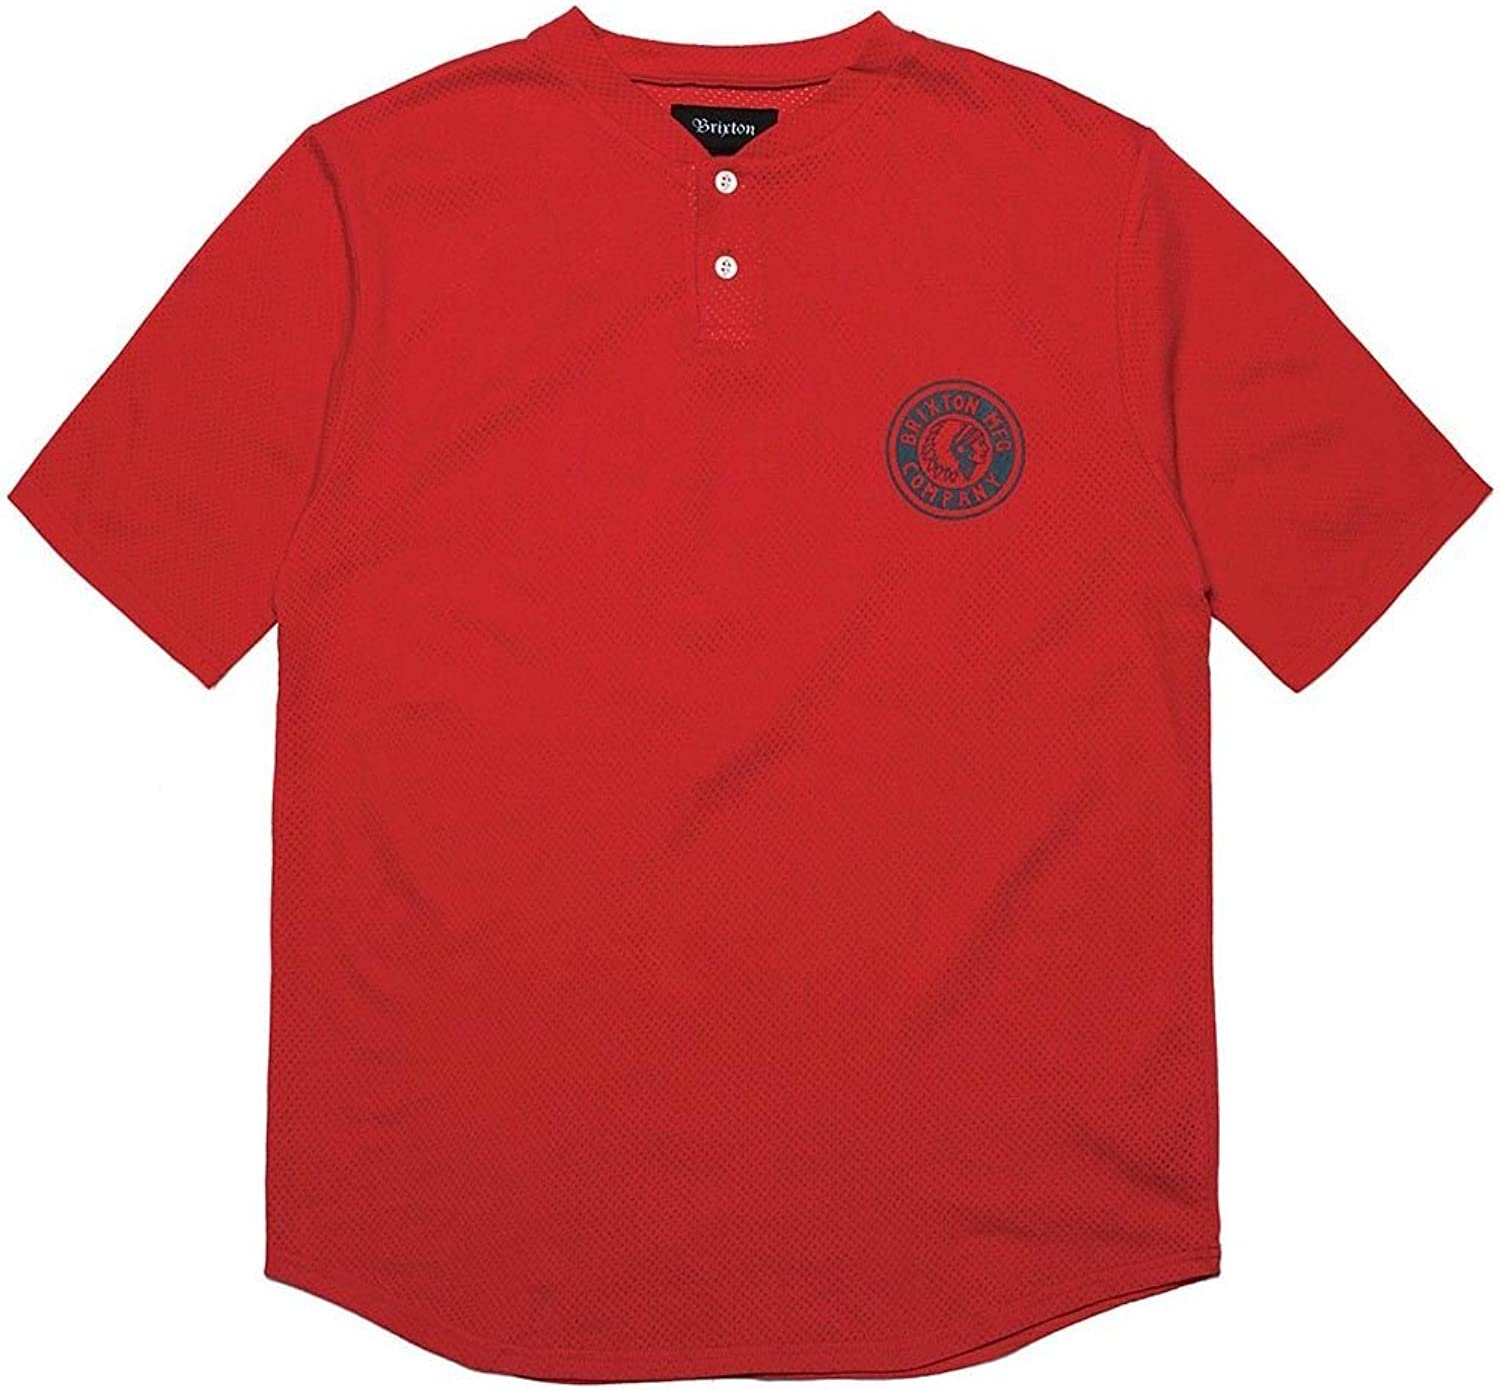 0ae5b7a73602bb Brixton Rival Henley Henley Henley T-Shirt Red 0fc3f0 - faoskc ...